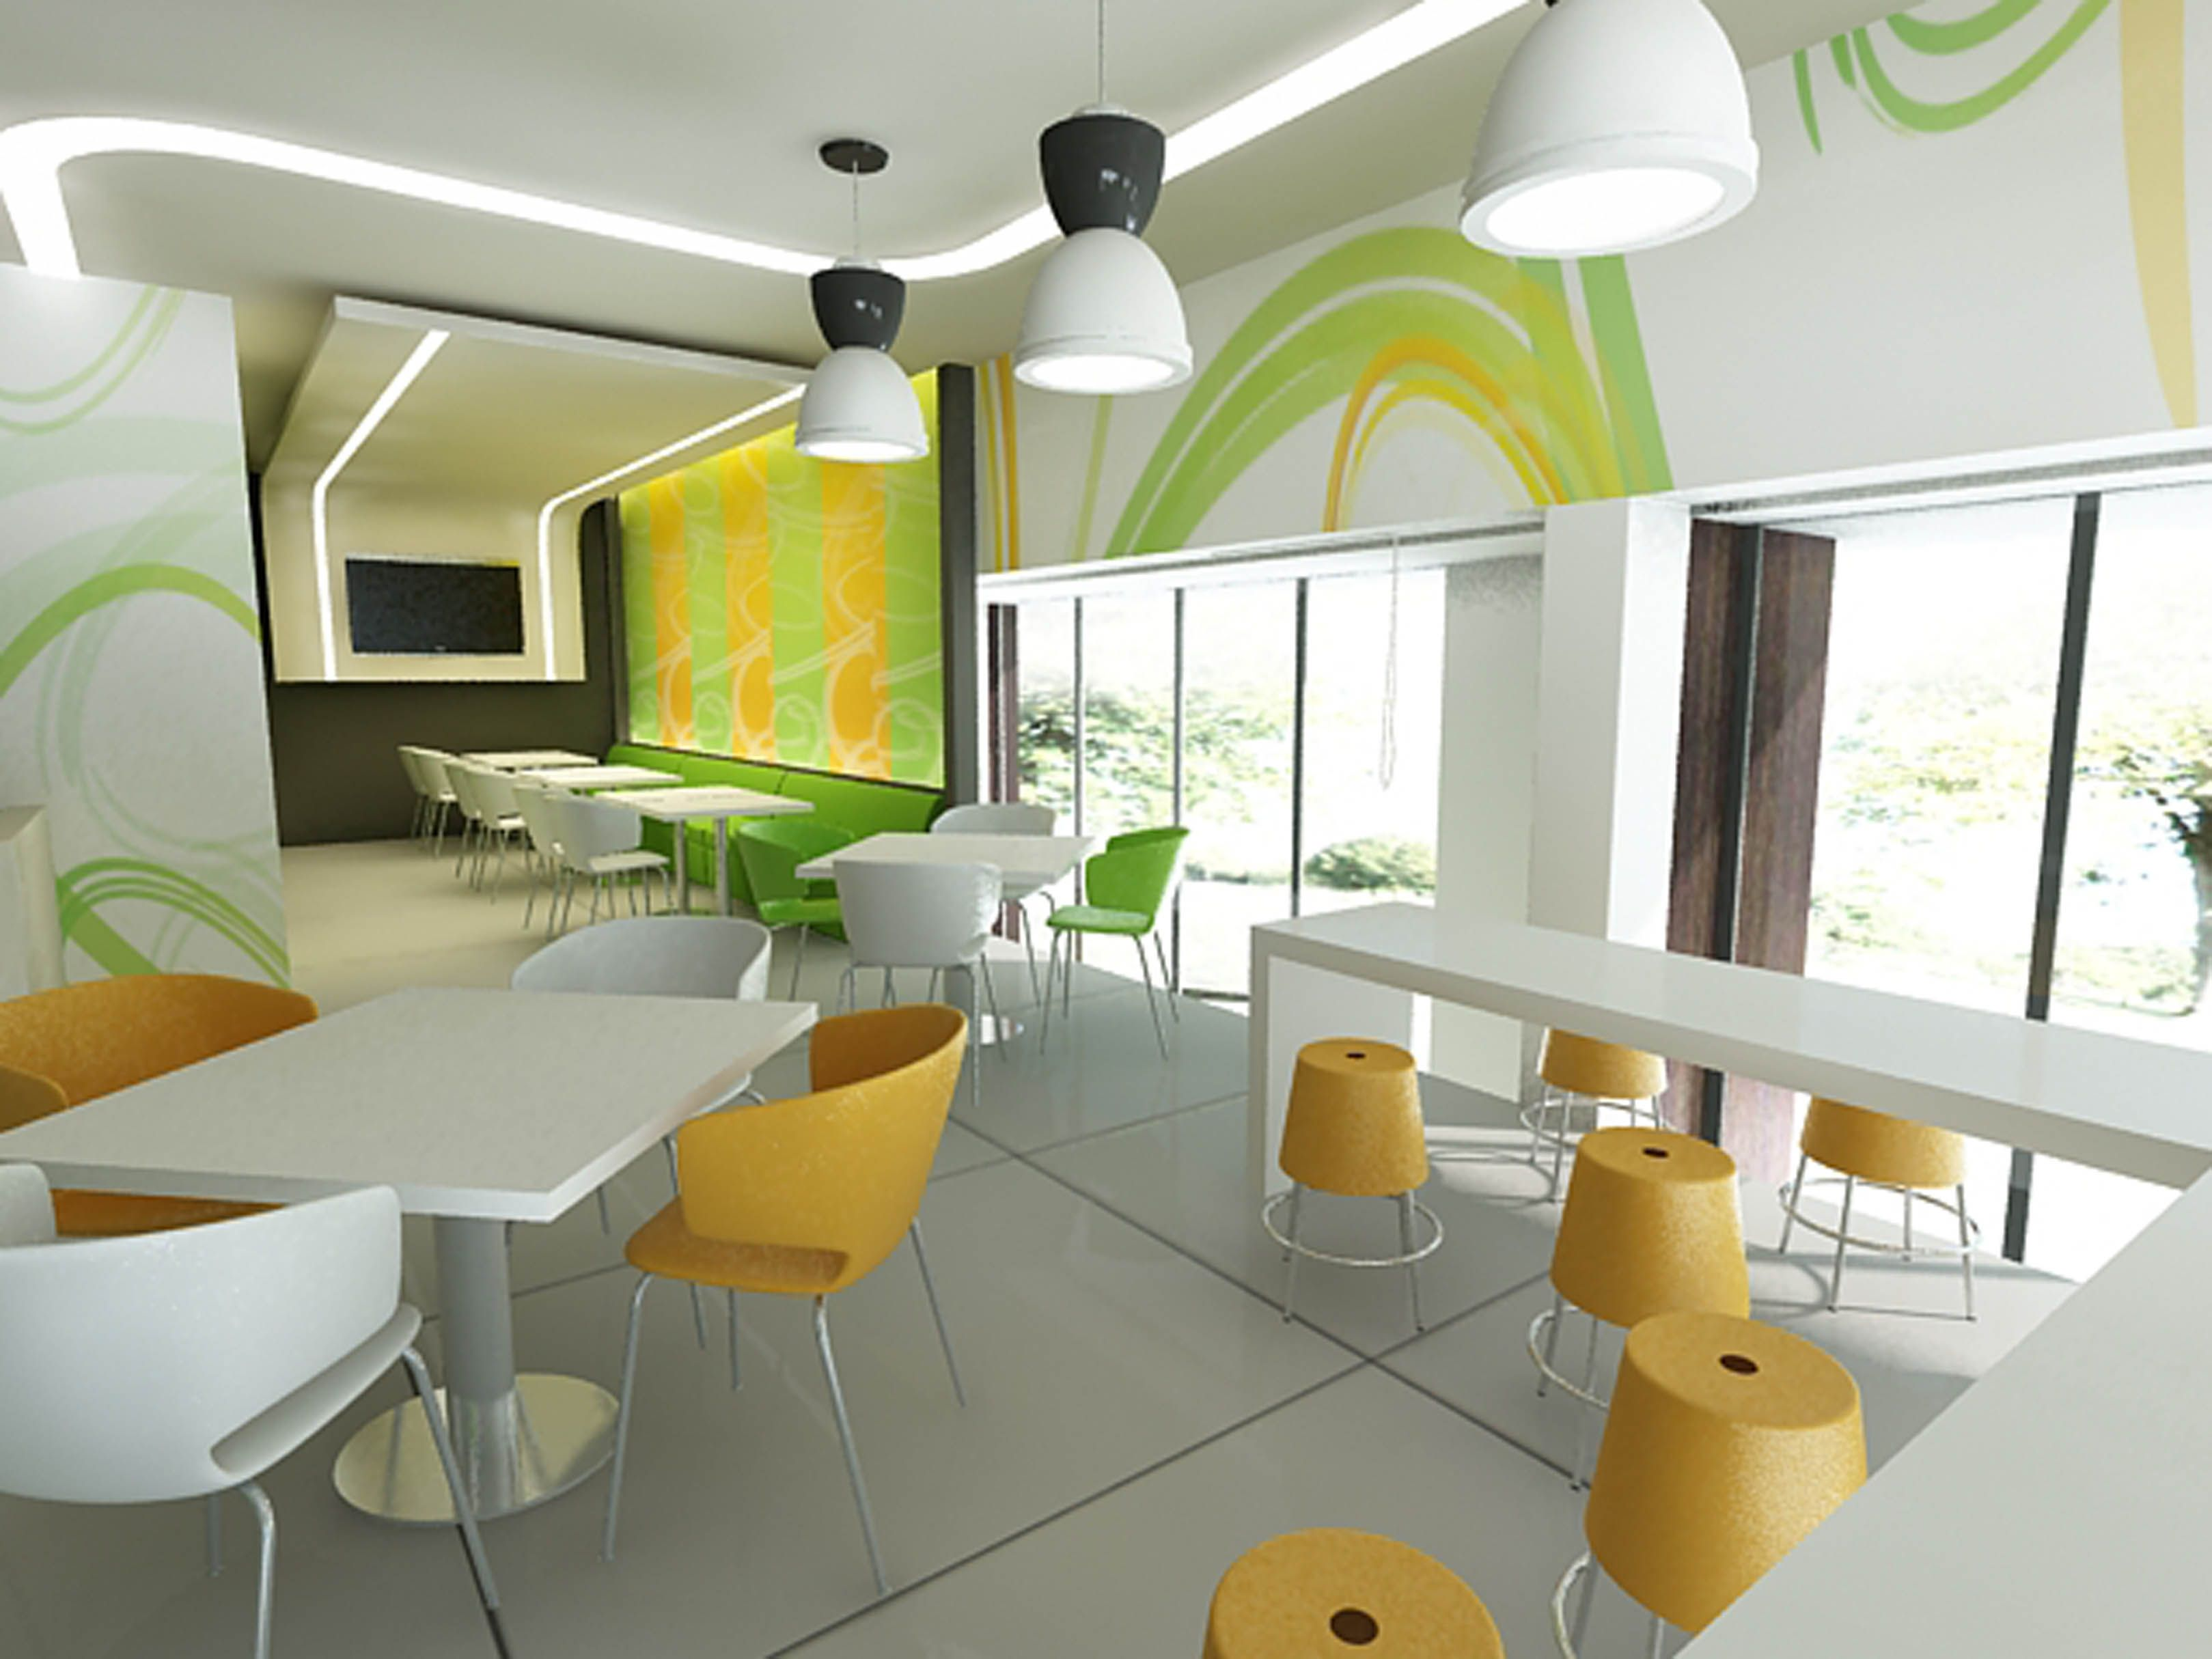 Decoration Fast Food 2 Interior Decoration Idea For Fast Food Restrurant 1